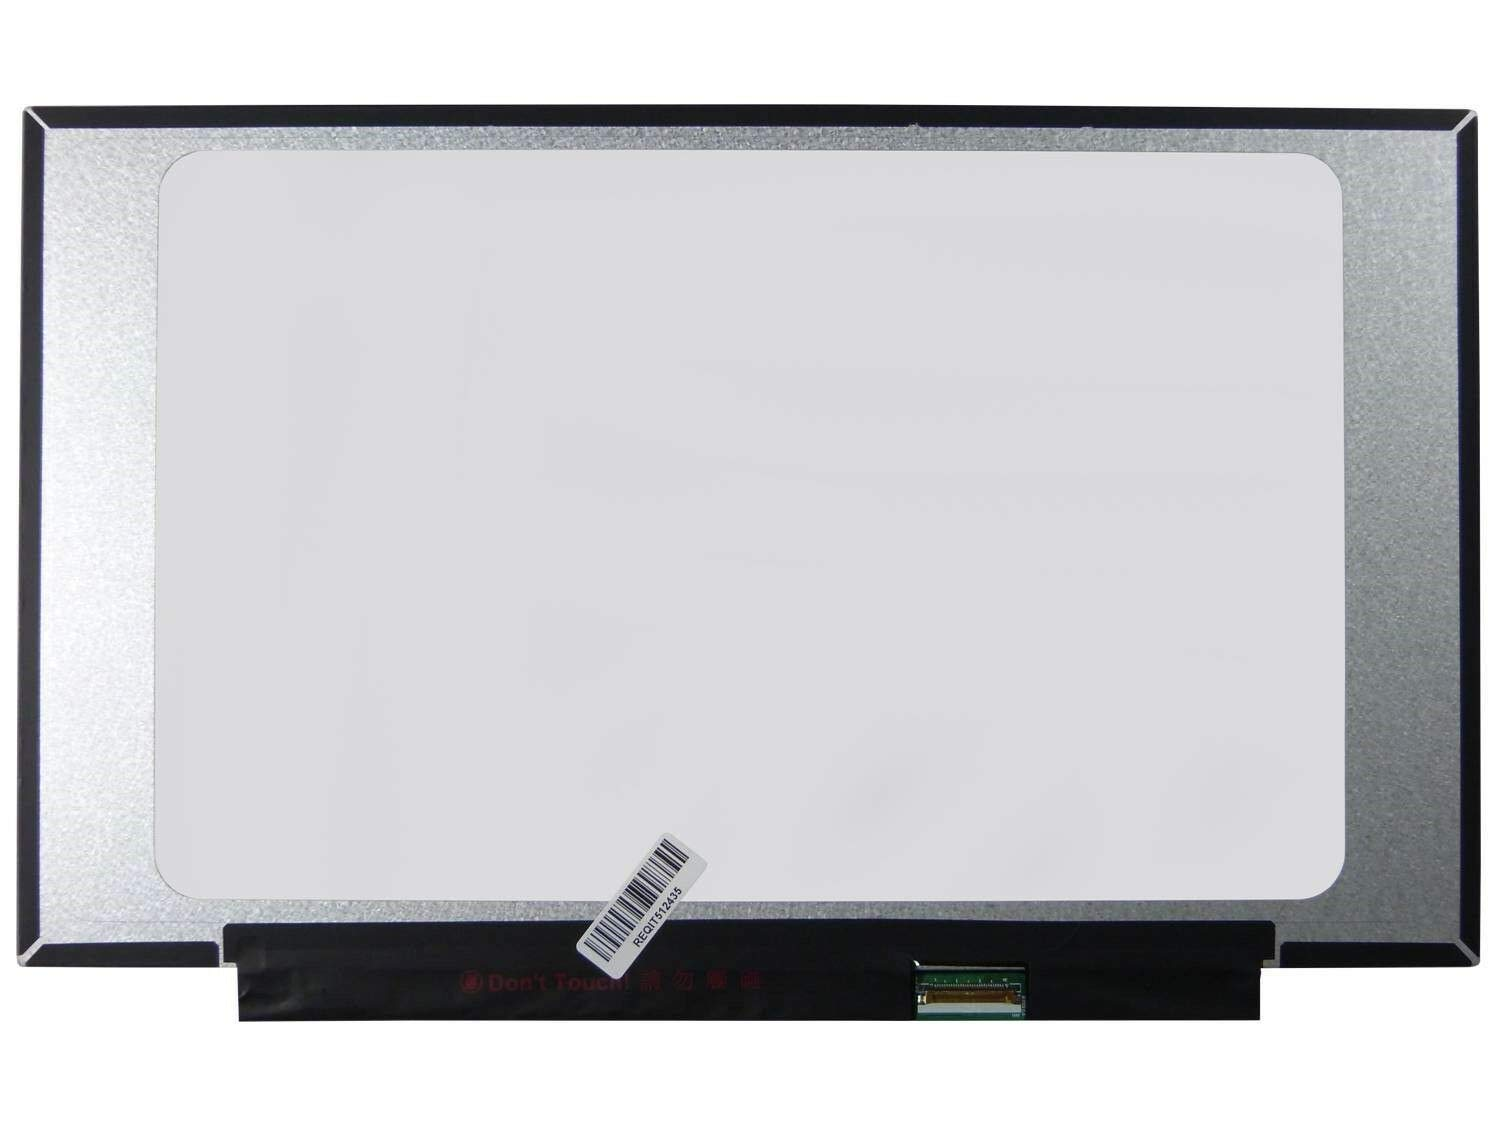 New Replacement 14'' FHD (1920x1080) LCD Screen LED Display Panel Non-Touch L14383-001 Fit HP Elitebook 840 G5